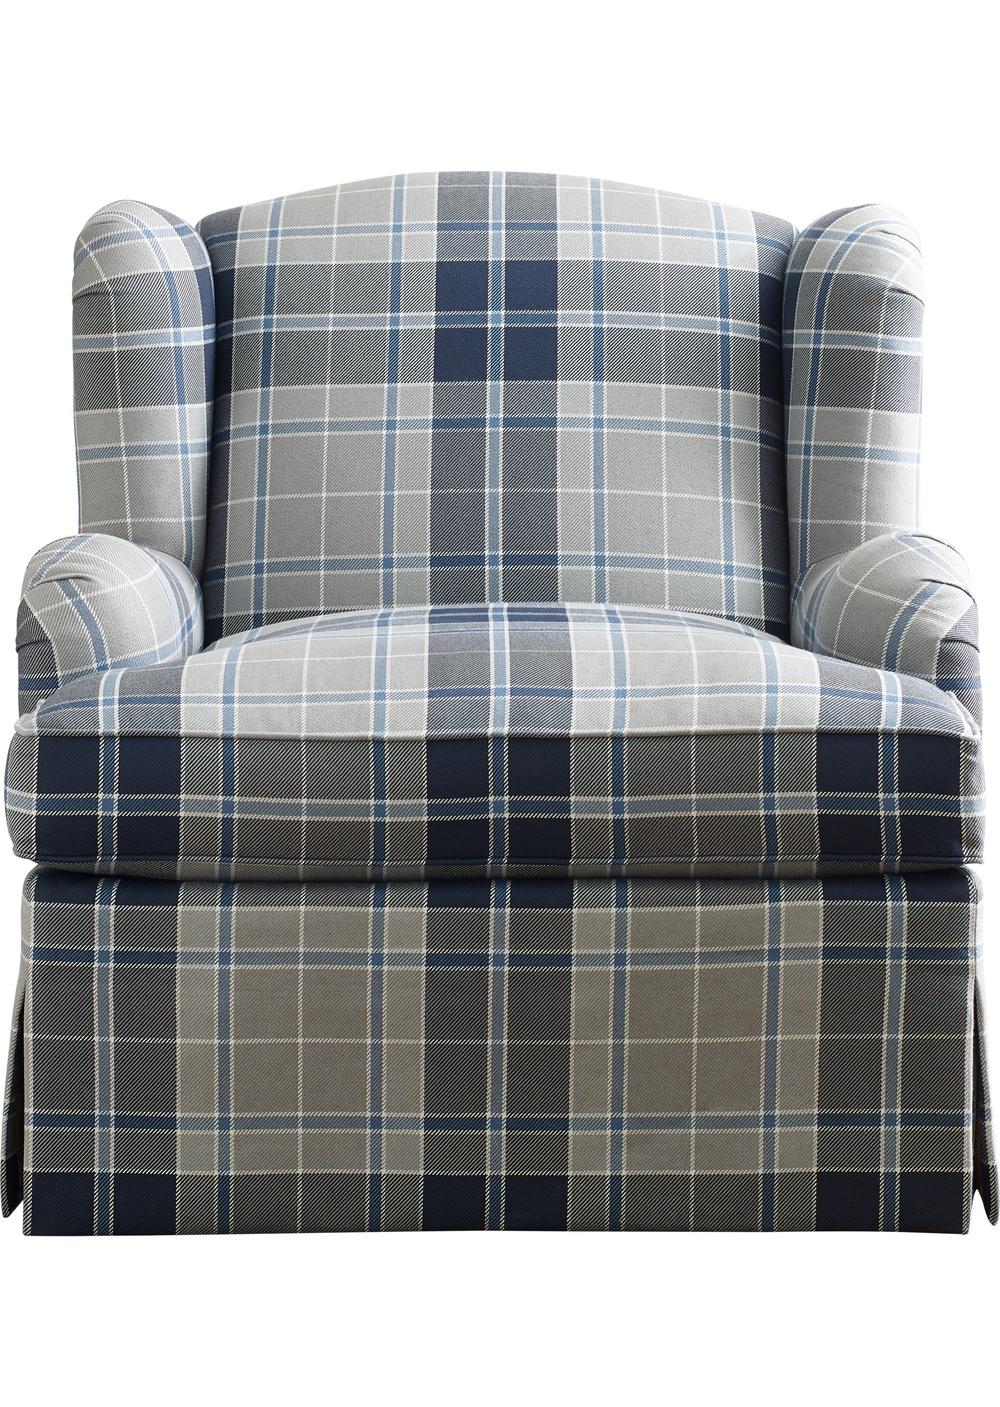 Hickory Chair - Dorchester Chair